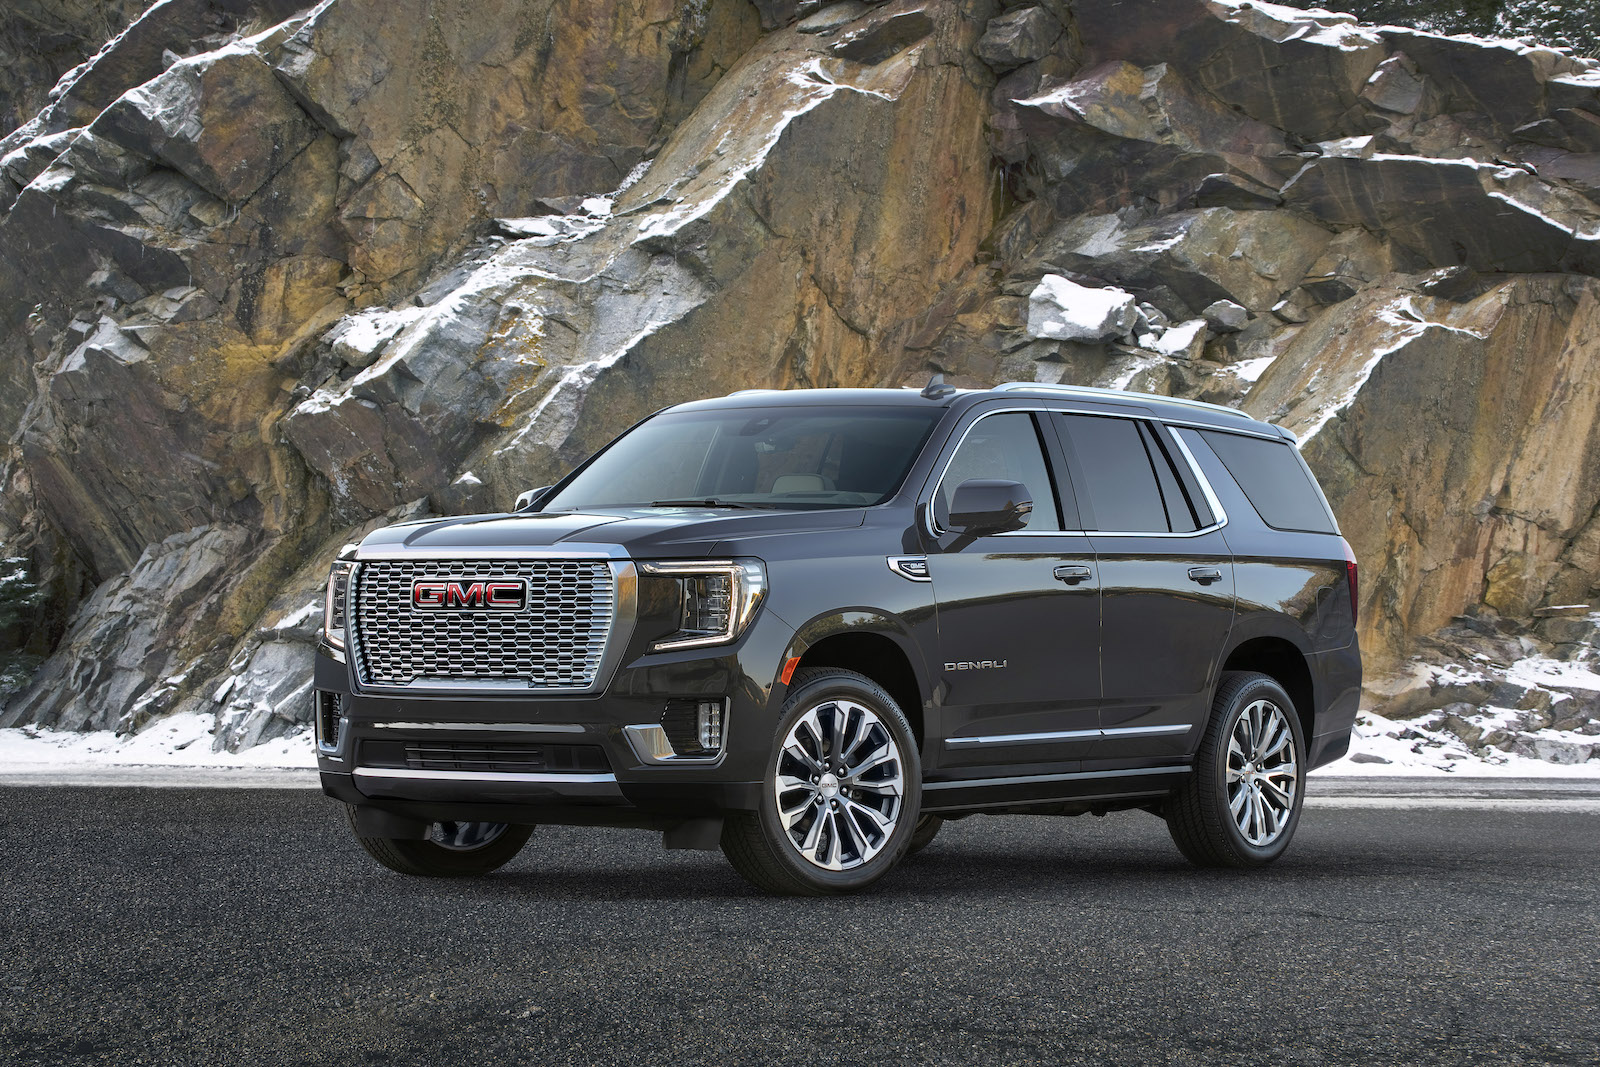 First Drive 2021 Gmc Yukon Denali The Detroit Bureau